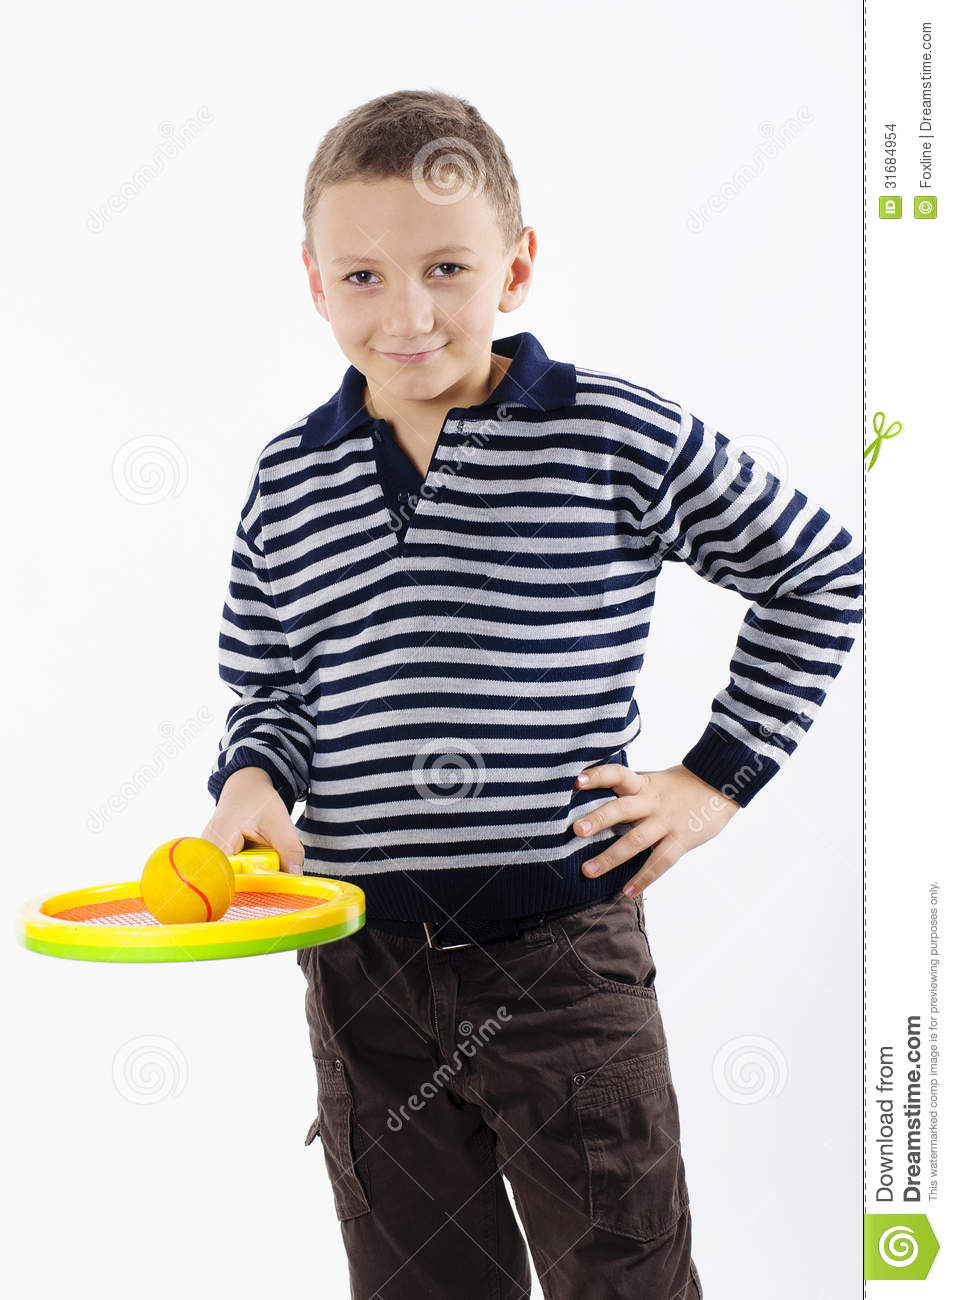 Boy with a tennis racket stock photo. Image of leisure ...